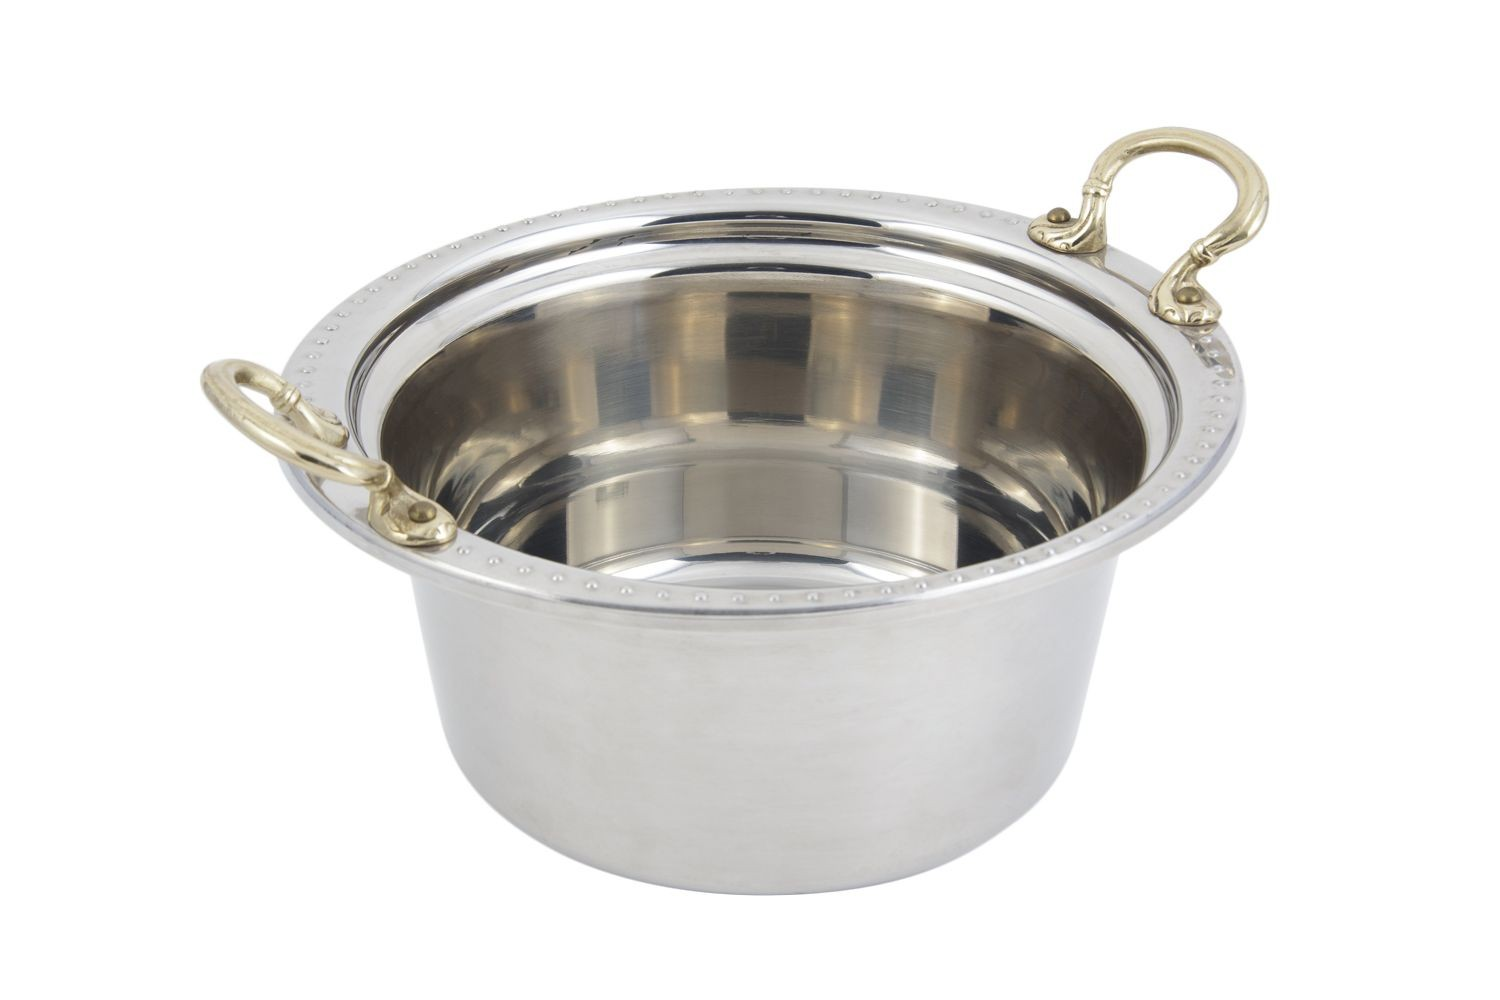 Bon Chef 5360HR Bolero Design Casserole Dish with Round Brass Handles, 5 Qt.